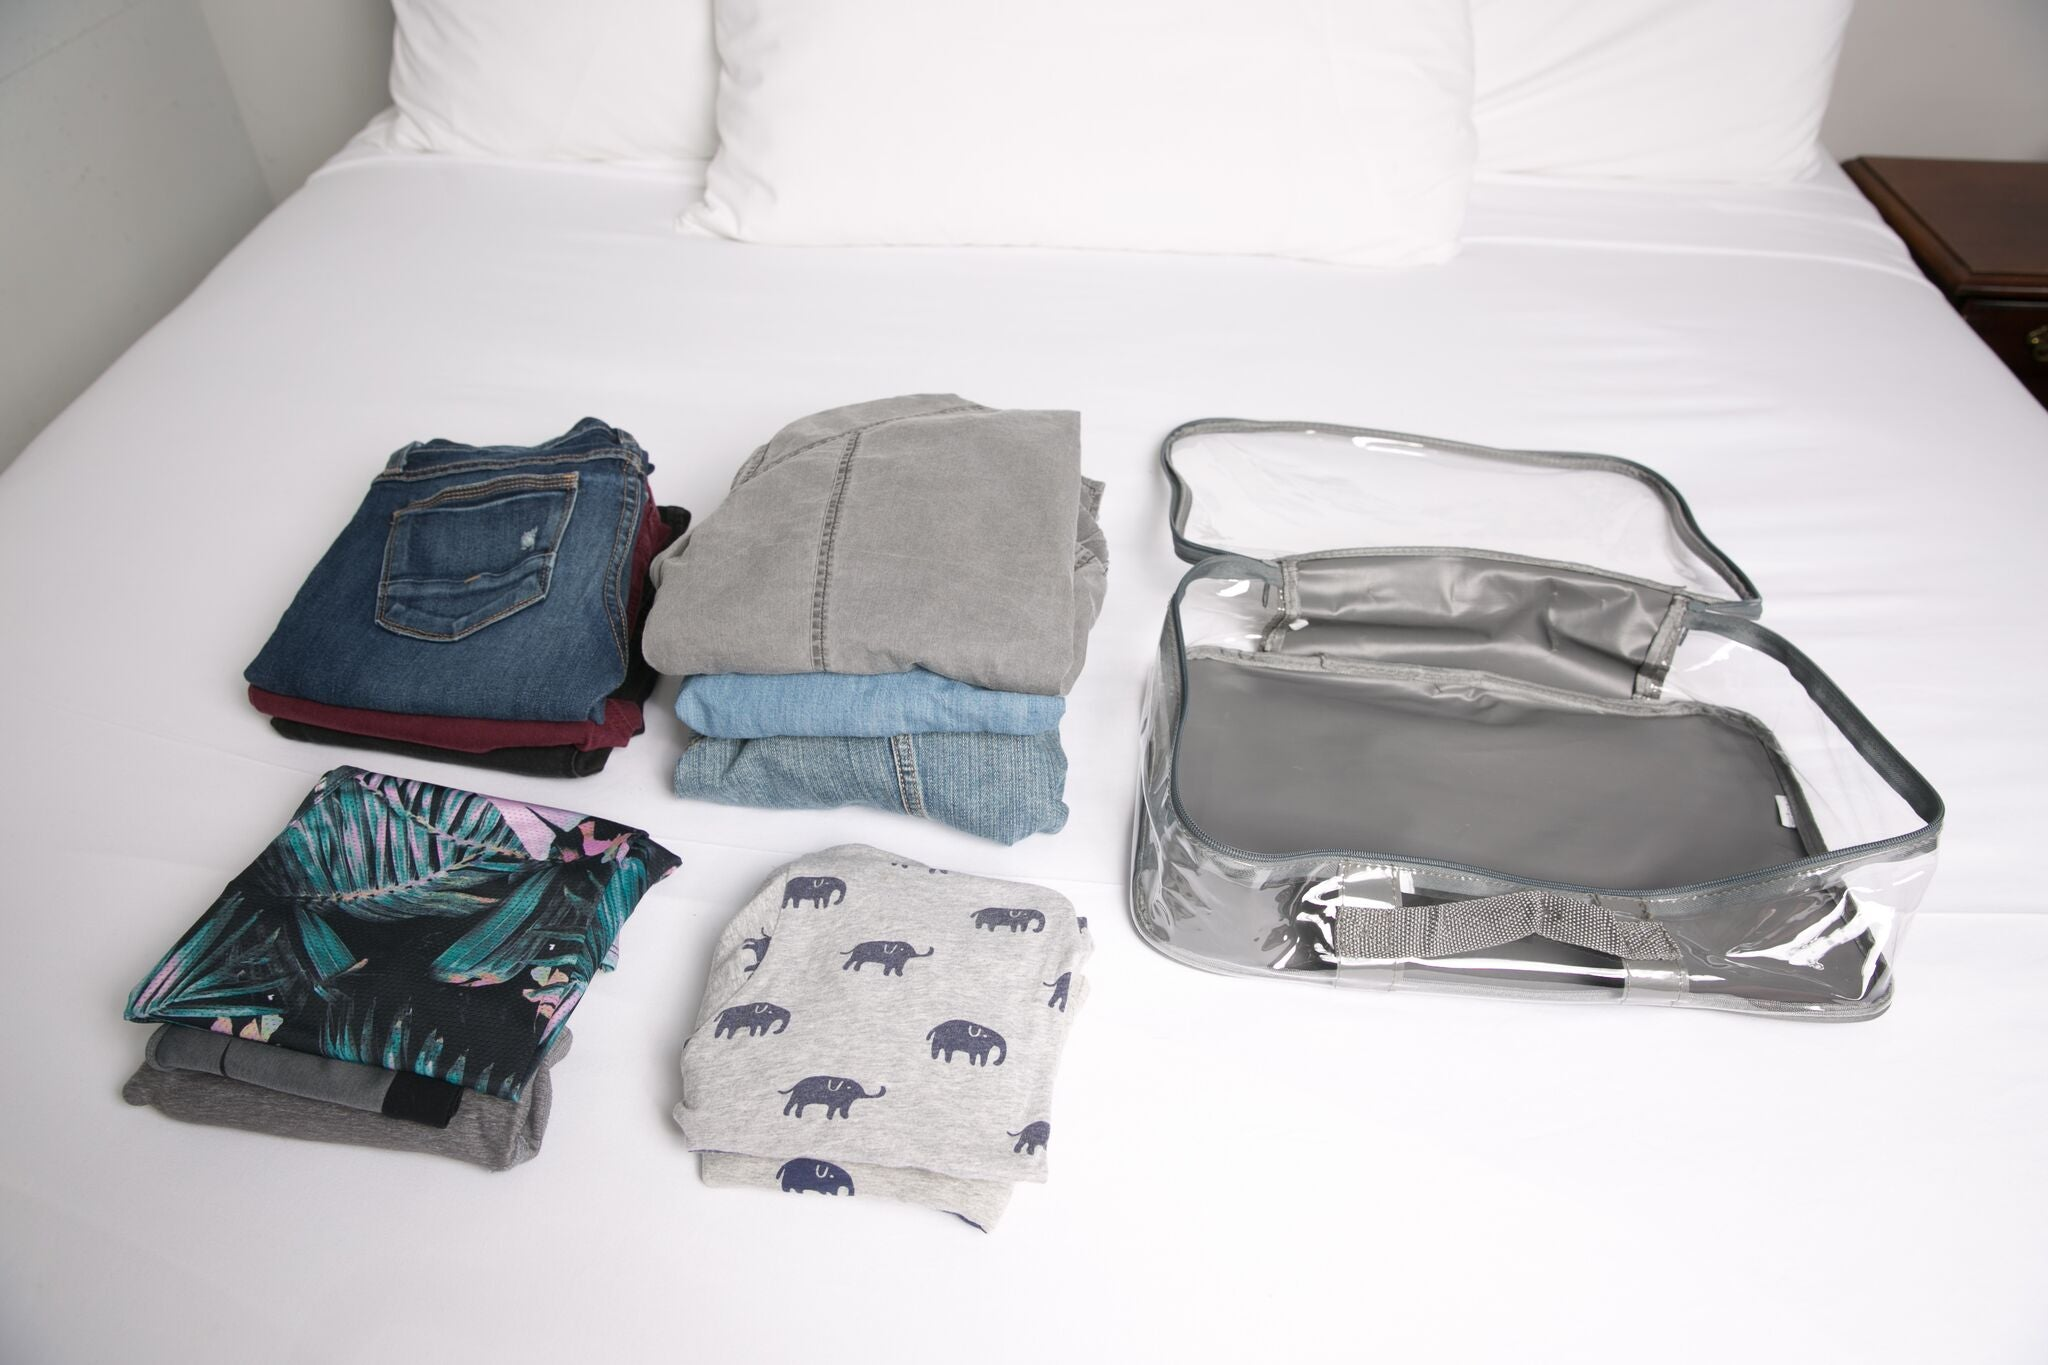 Bulky clothes to be packed in large cube